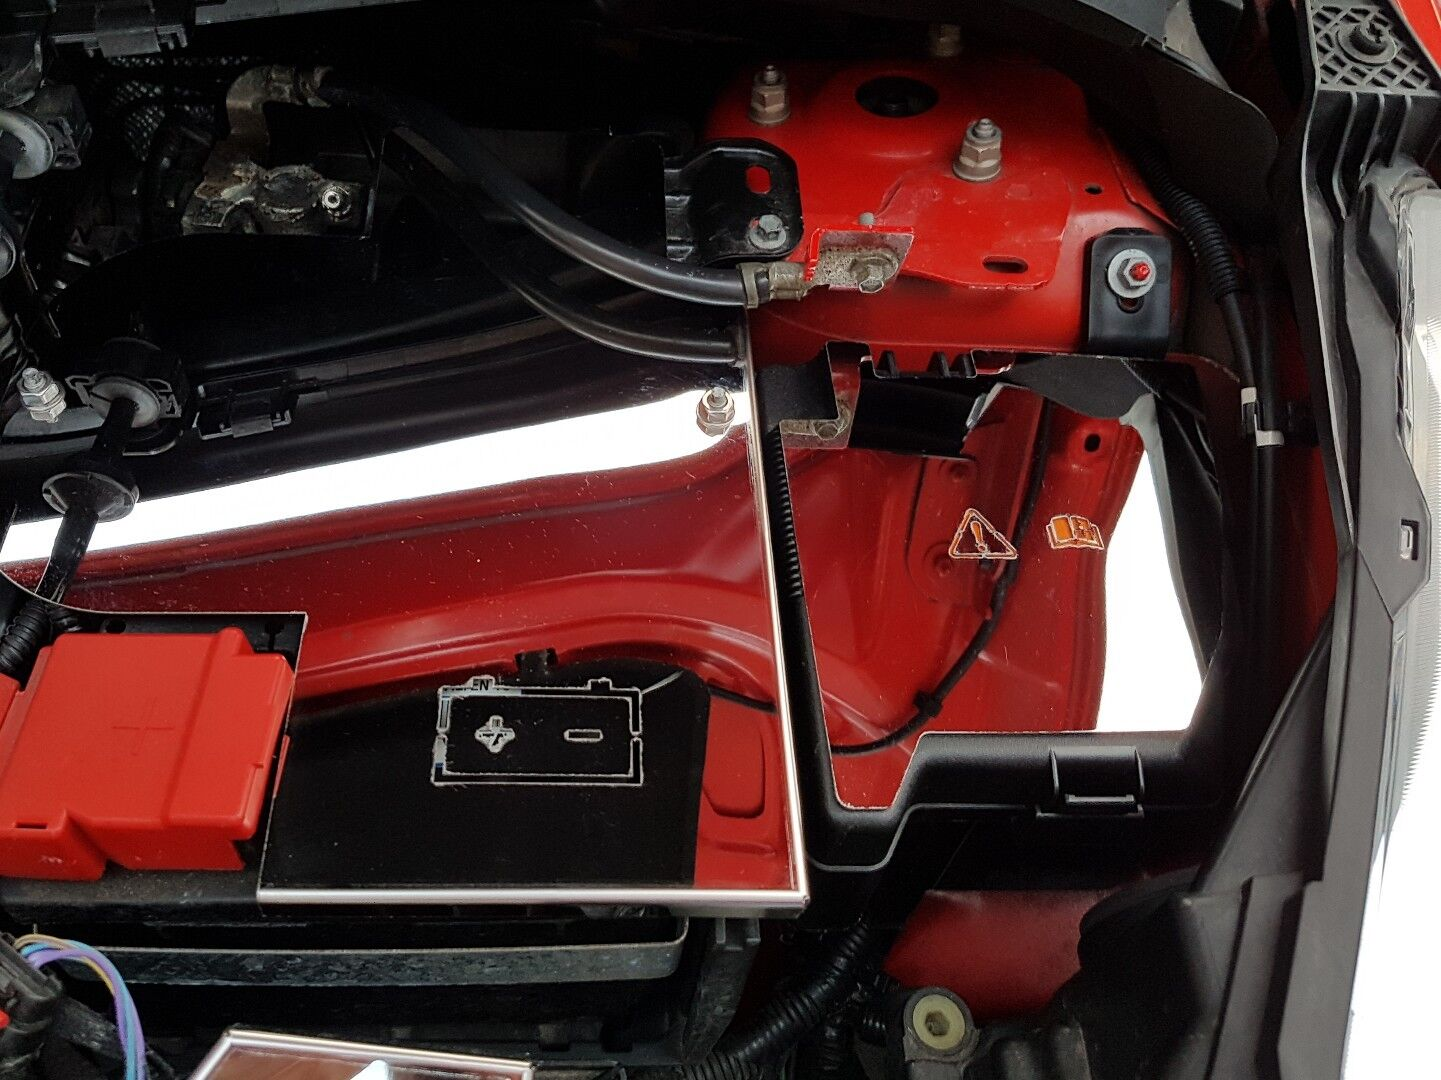 Ford Fiesta Mk7 Inc St180 Polished Stainless Steel Fuse Box Cover With Logo 2 Of 3